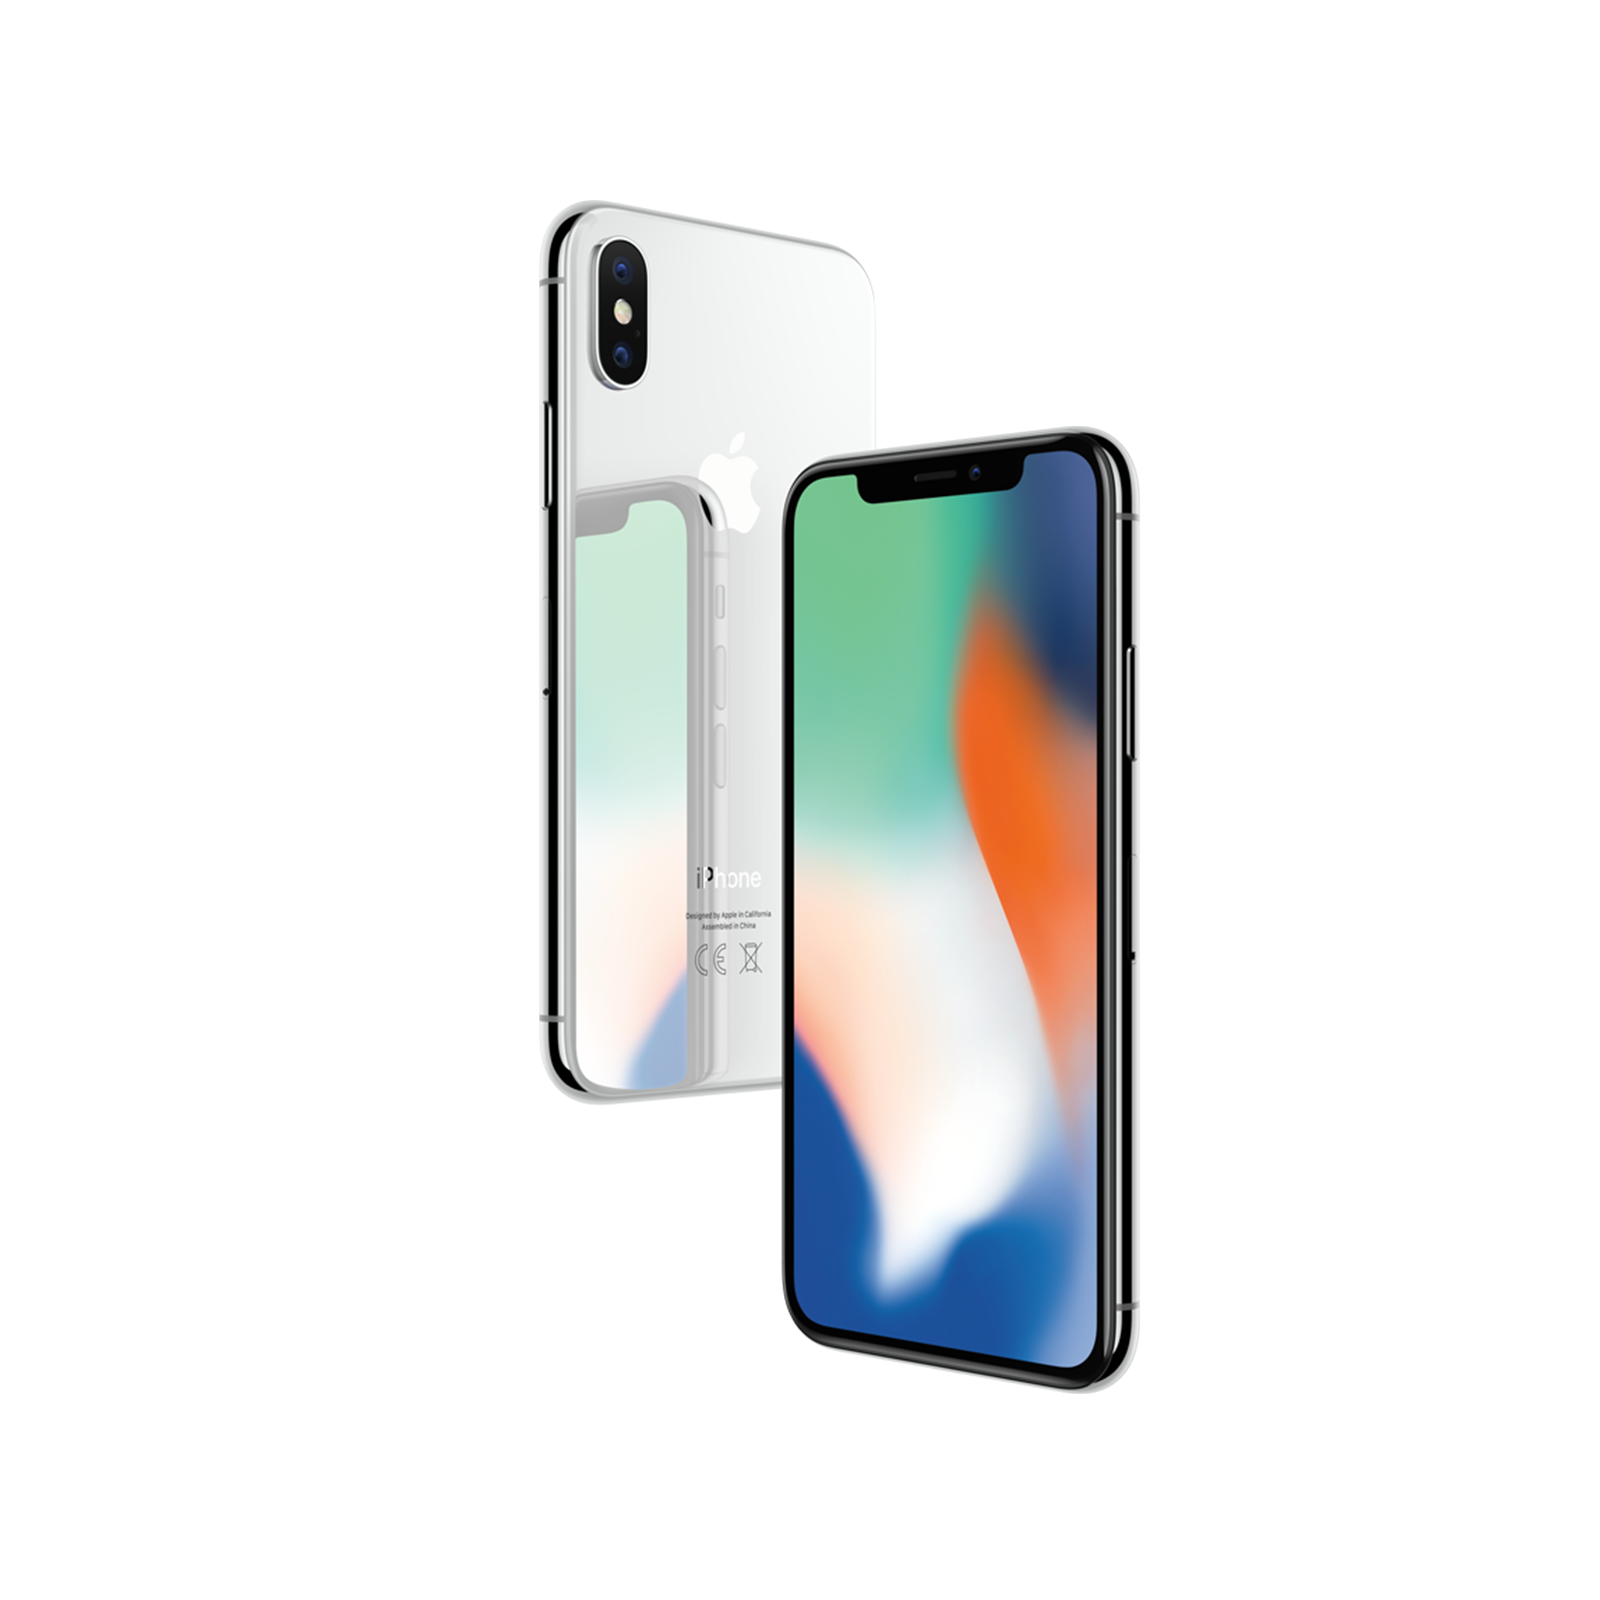 Refurbished Apple iPhone X 256GB, Silver - Unlocked LTE